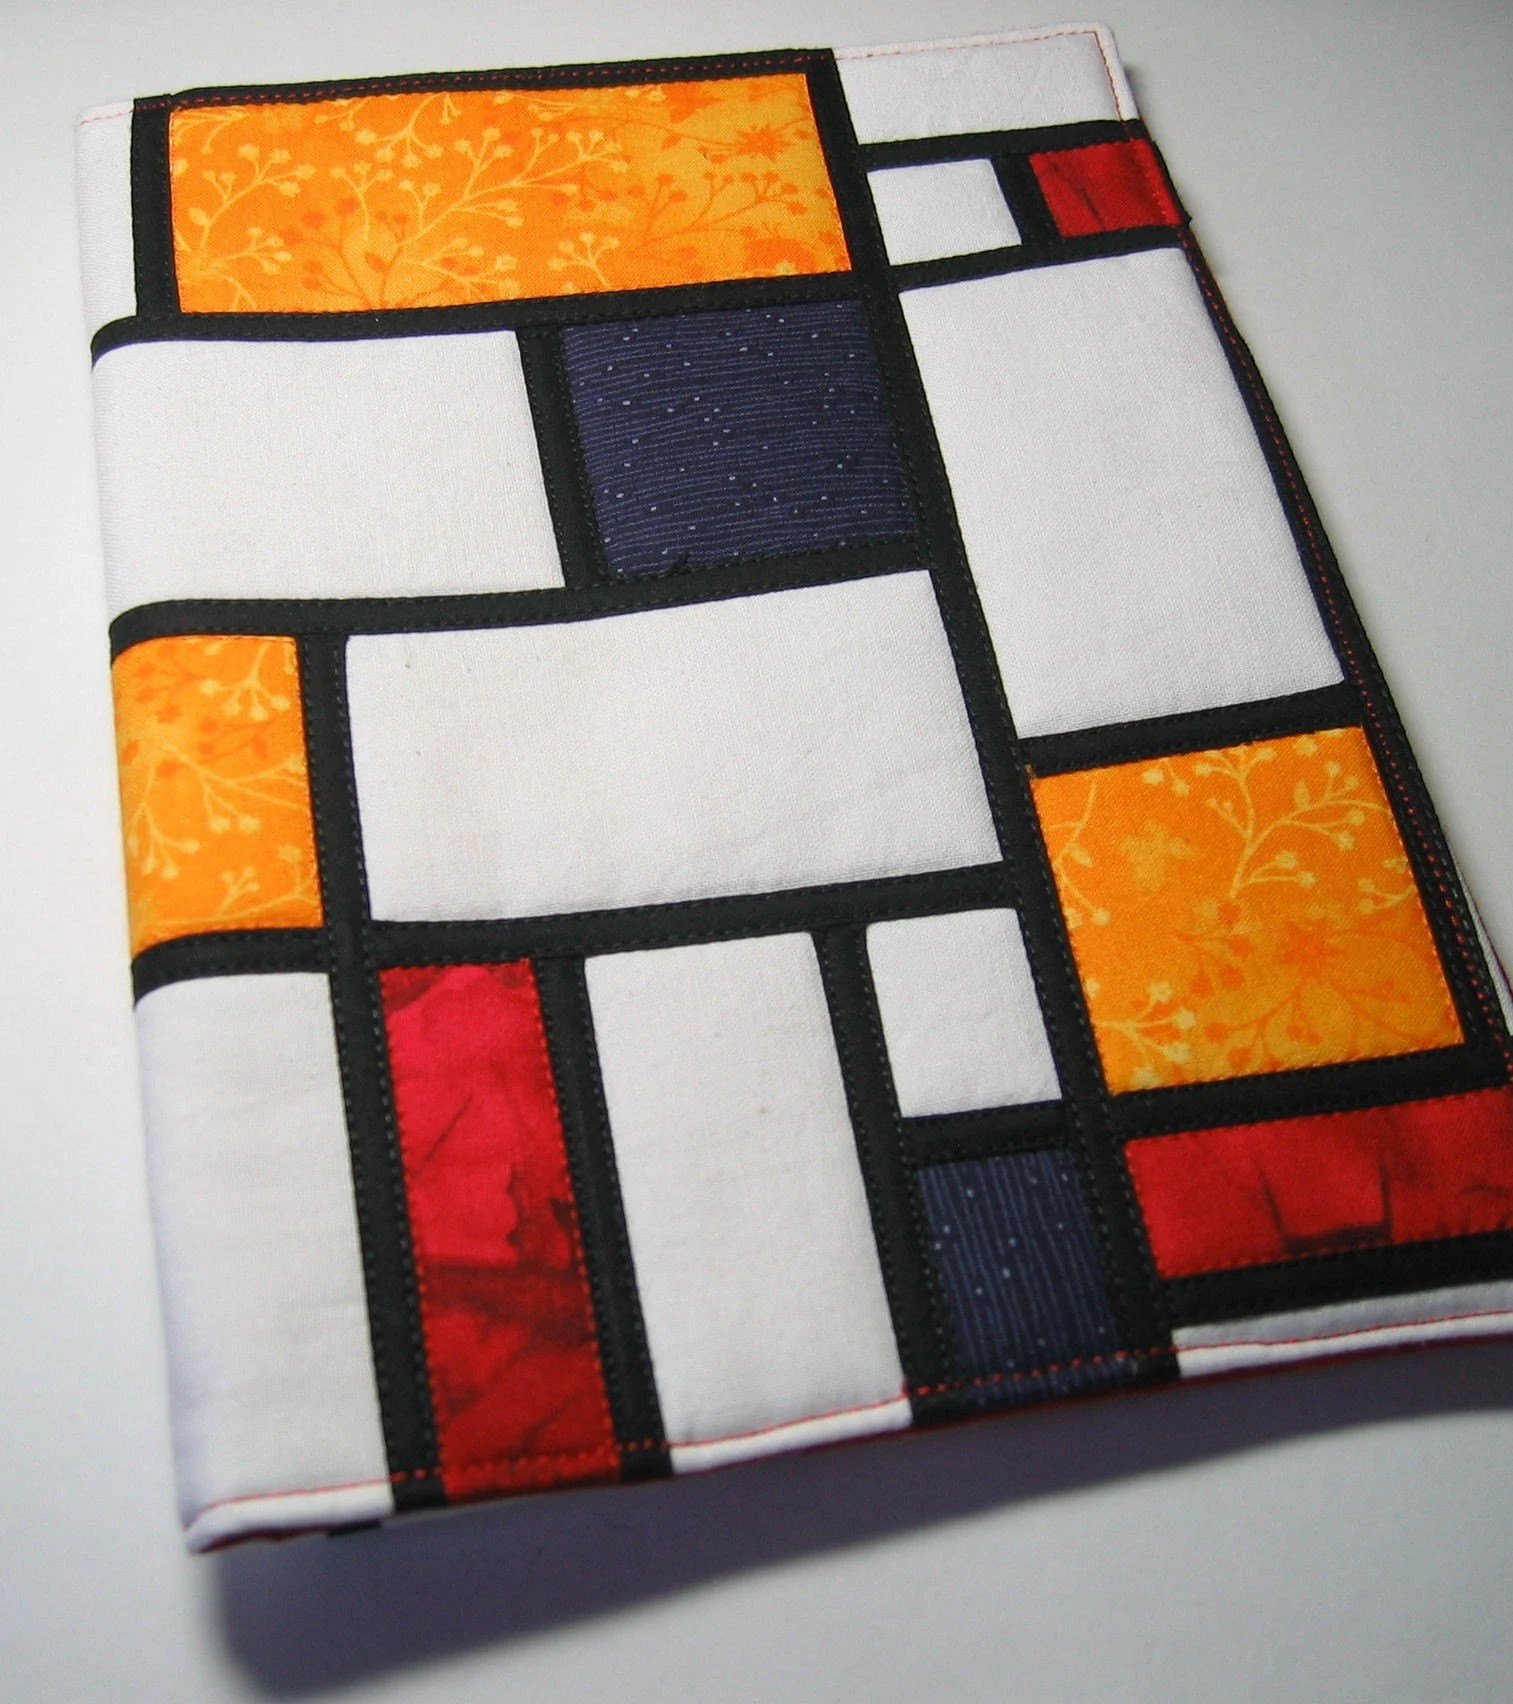 Tappeto Mondrian Channelling Piet Mondrian Journal Cover